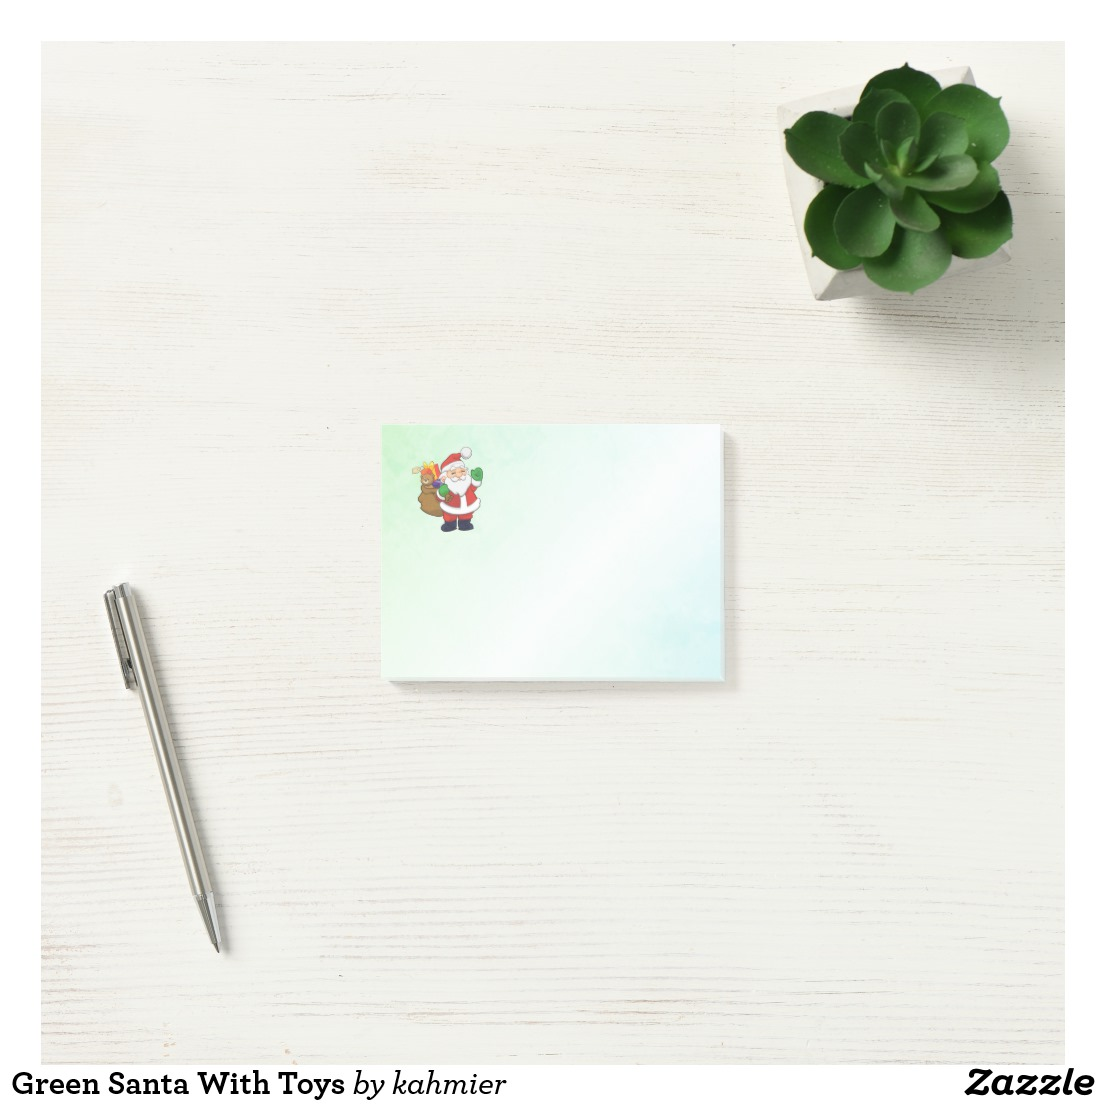 Green Santa With Toys Post-it Notes